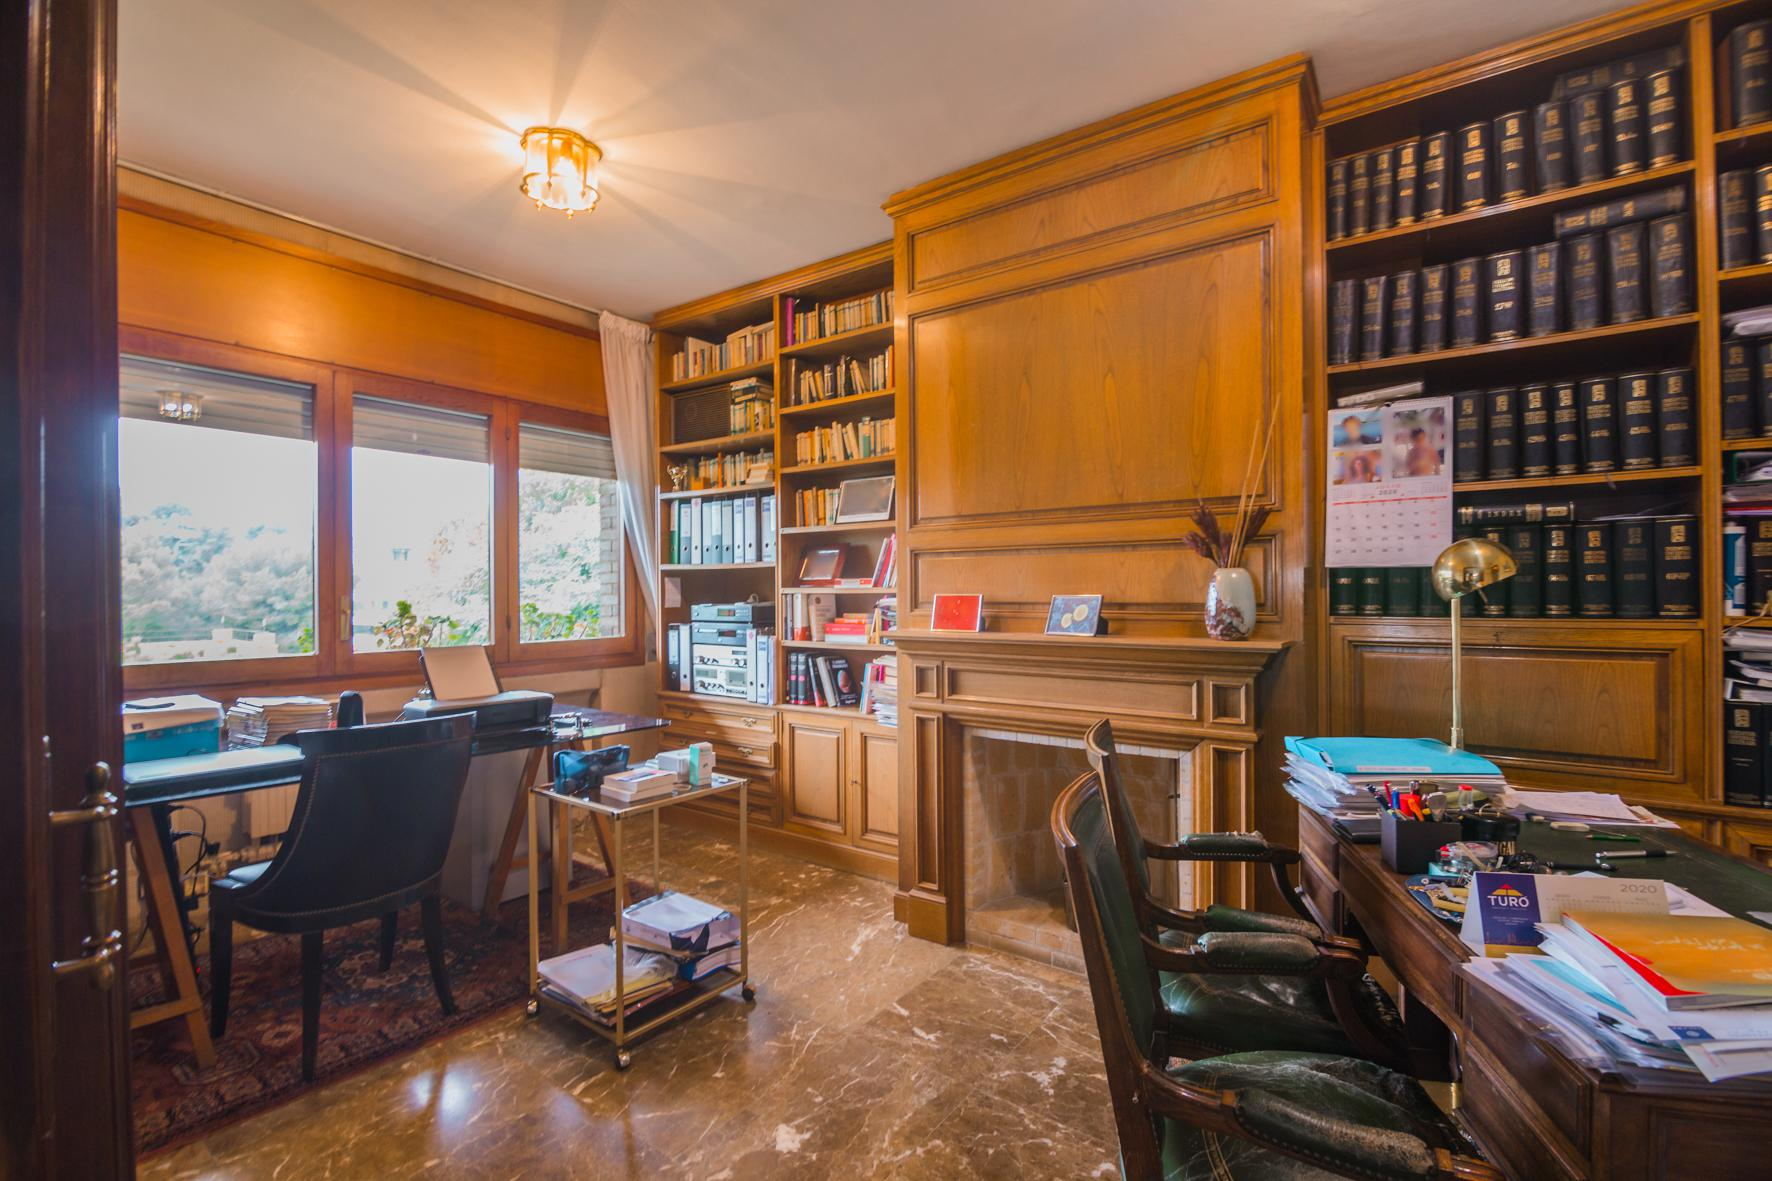 244103 Penthouse for sale in Les Corts, Pedralbes 18